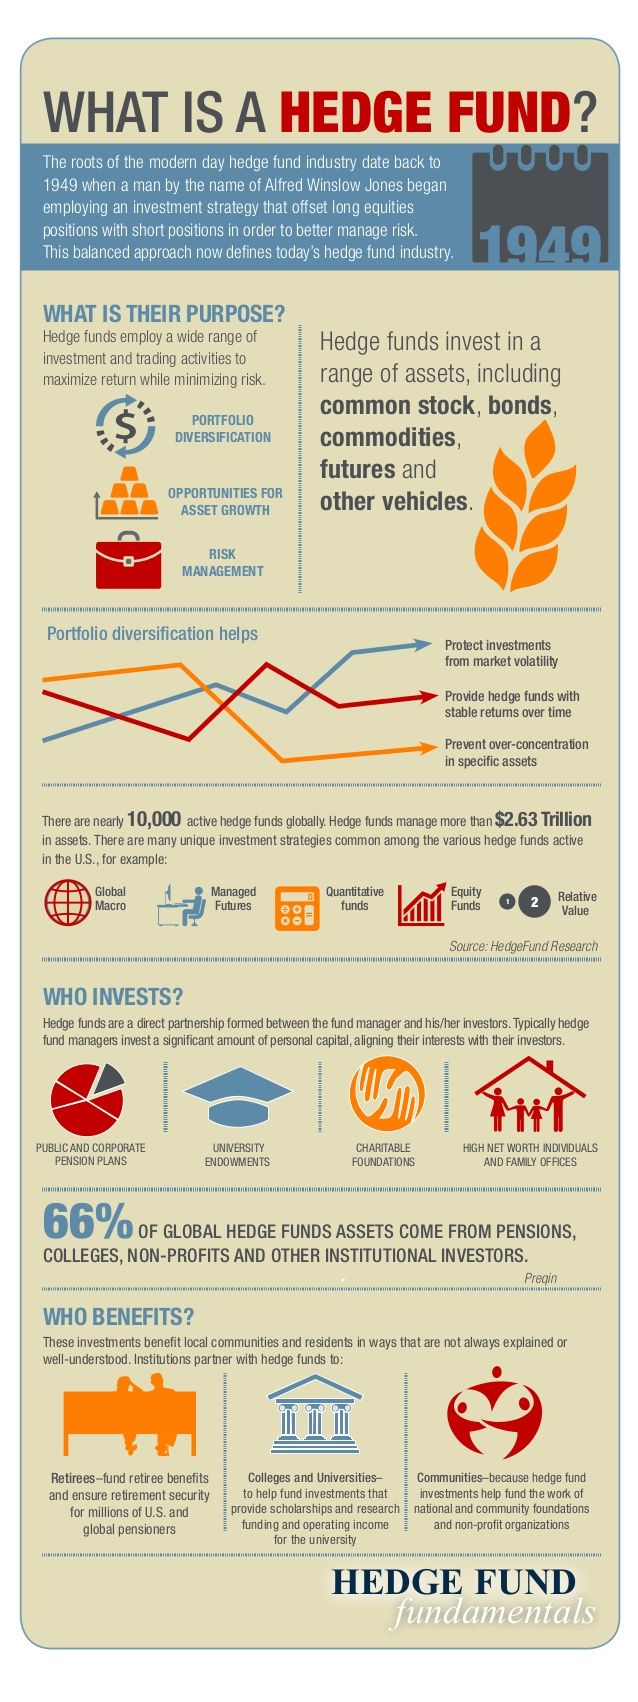 What is a Hedge Fund Infographic by HedgeFundFundamentals via slideshare